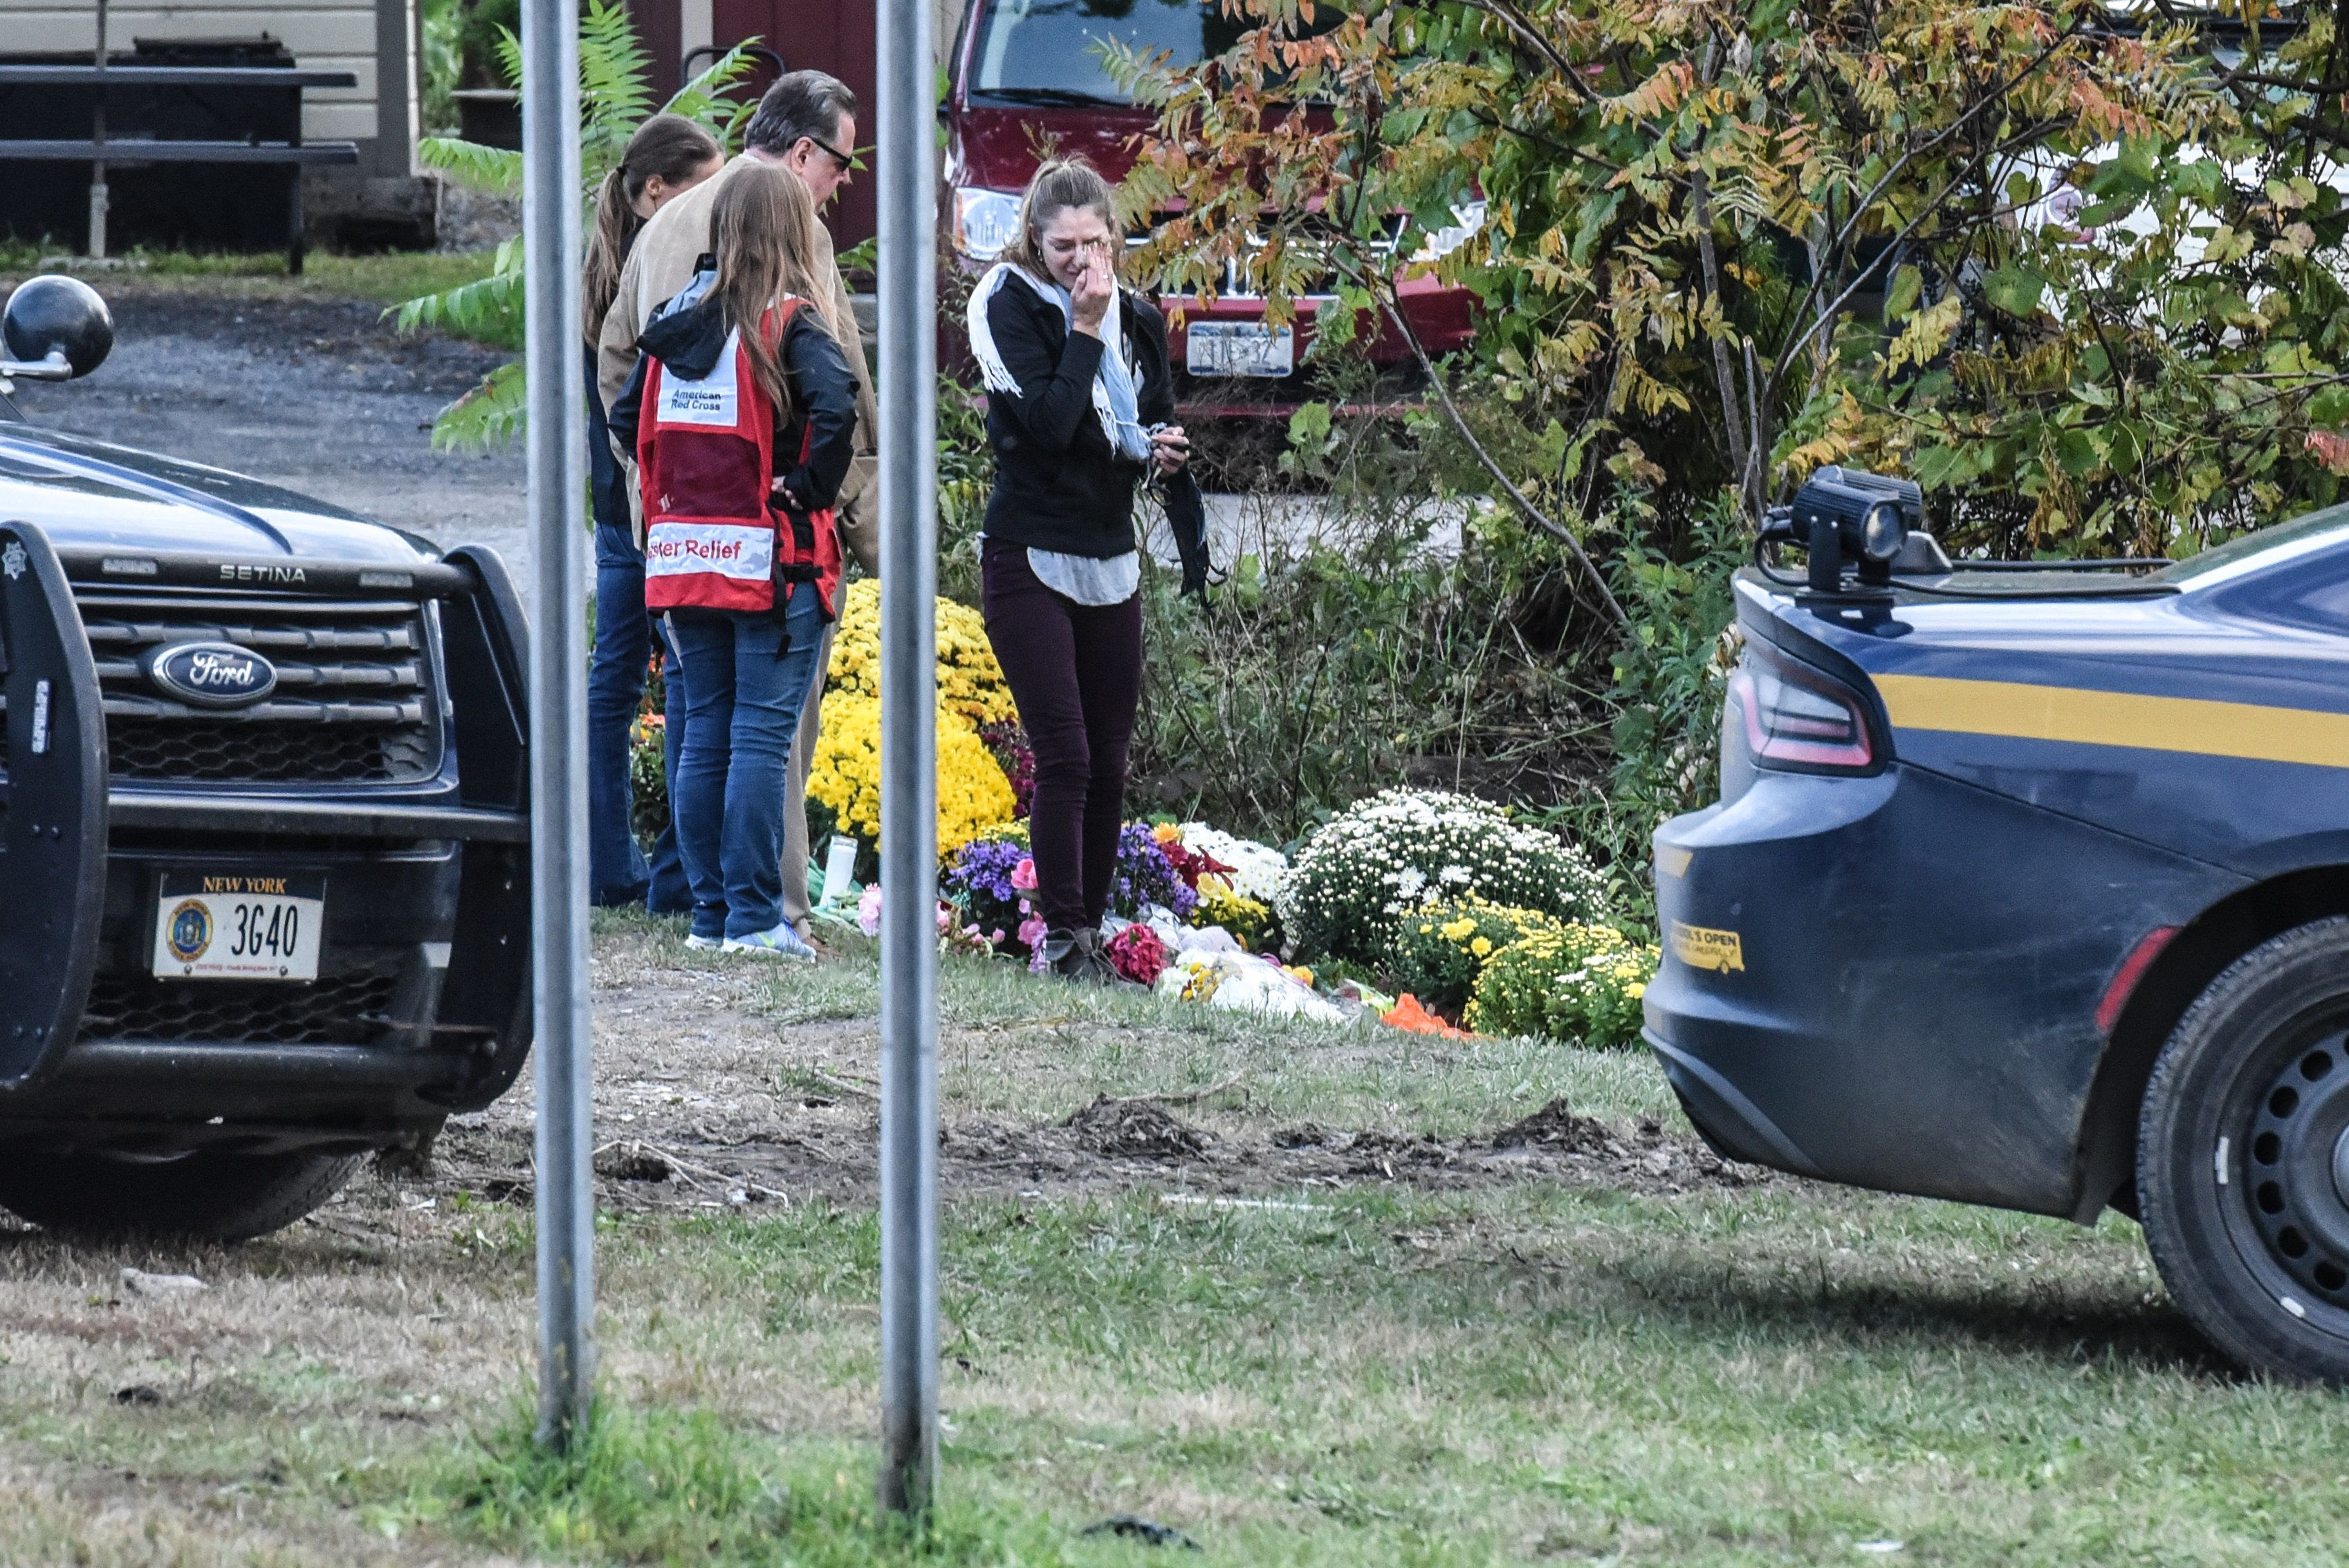 SCOHARIE, NY - OCTOBER 08: People mourn at the site of the fatal limousine crash on October 8, 2018 in Schoharie, New York. 20 people died in the crash including the driver of the limo, 17 passengers, and two pedestrians. (Photo by Stephanie Keith/Getty Images)